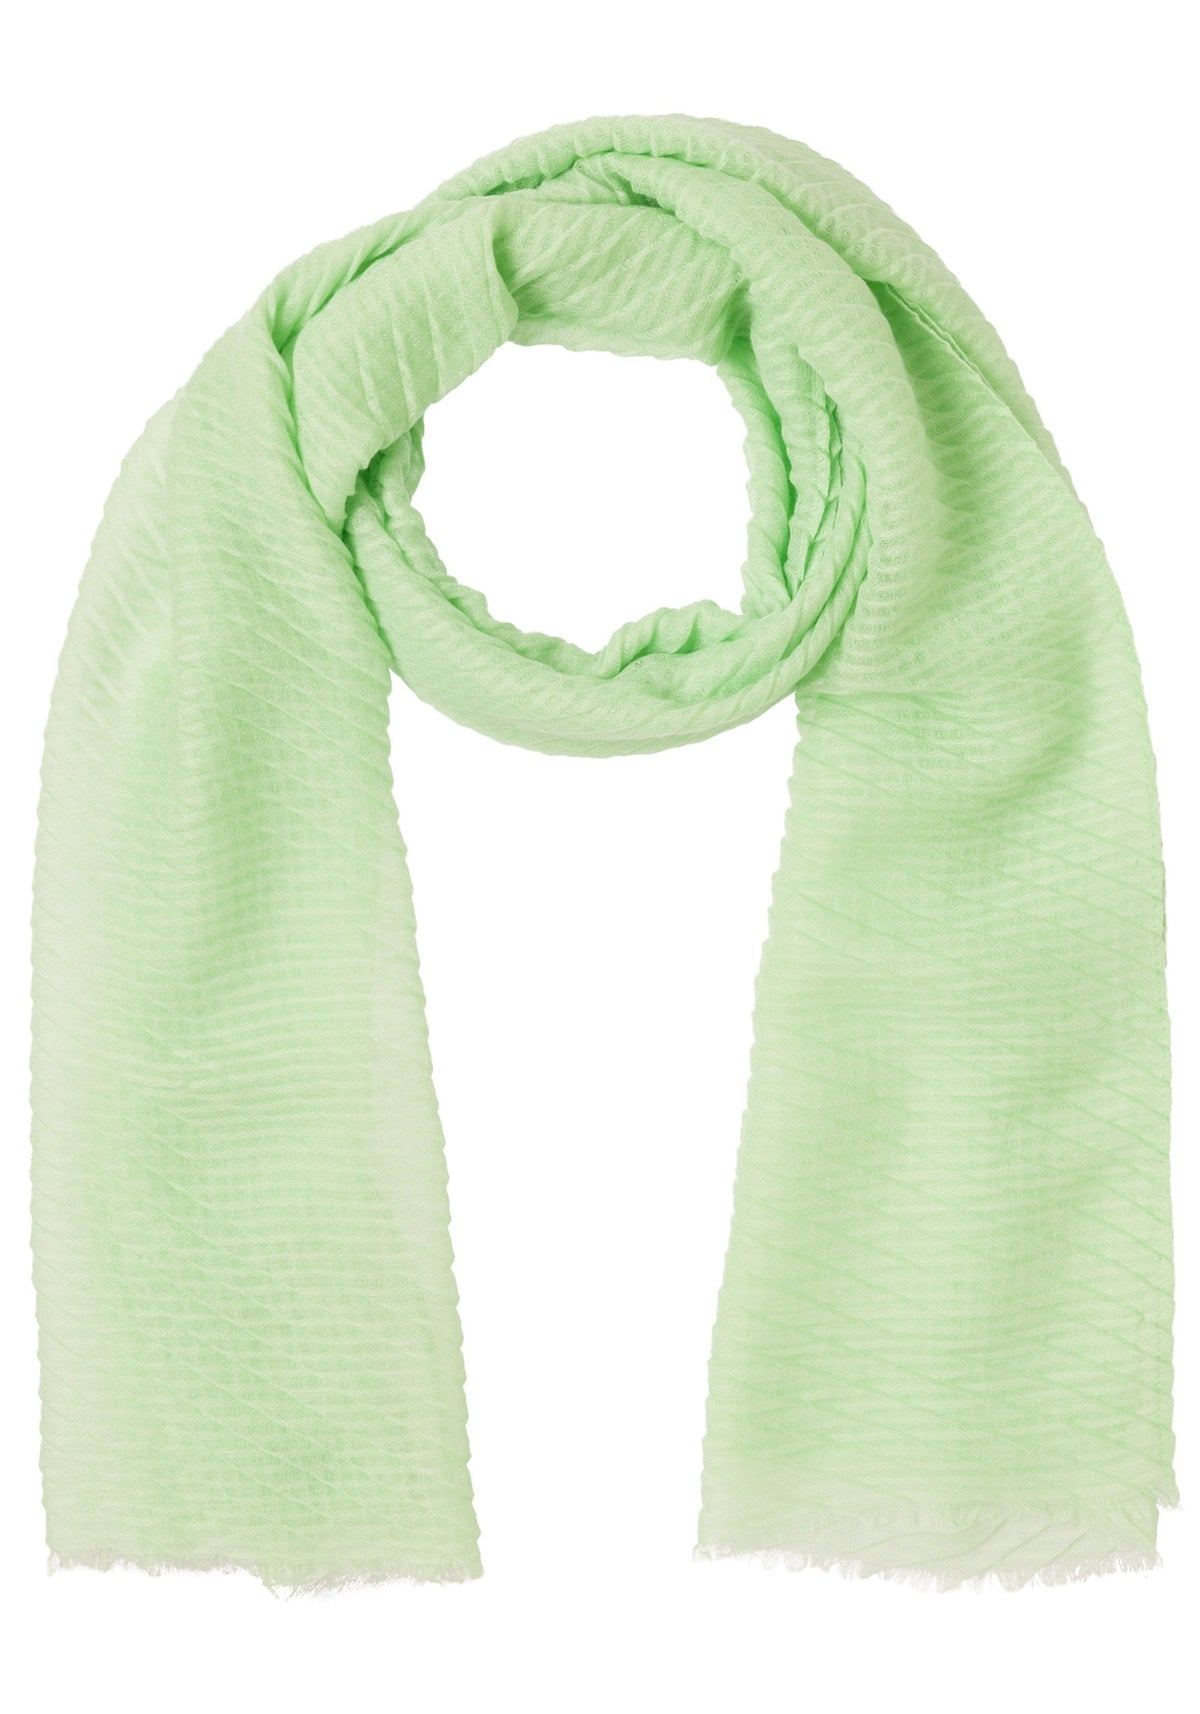 Pleated Scarf with Frayed Edge Trim